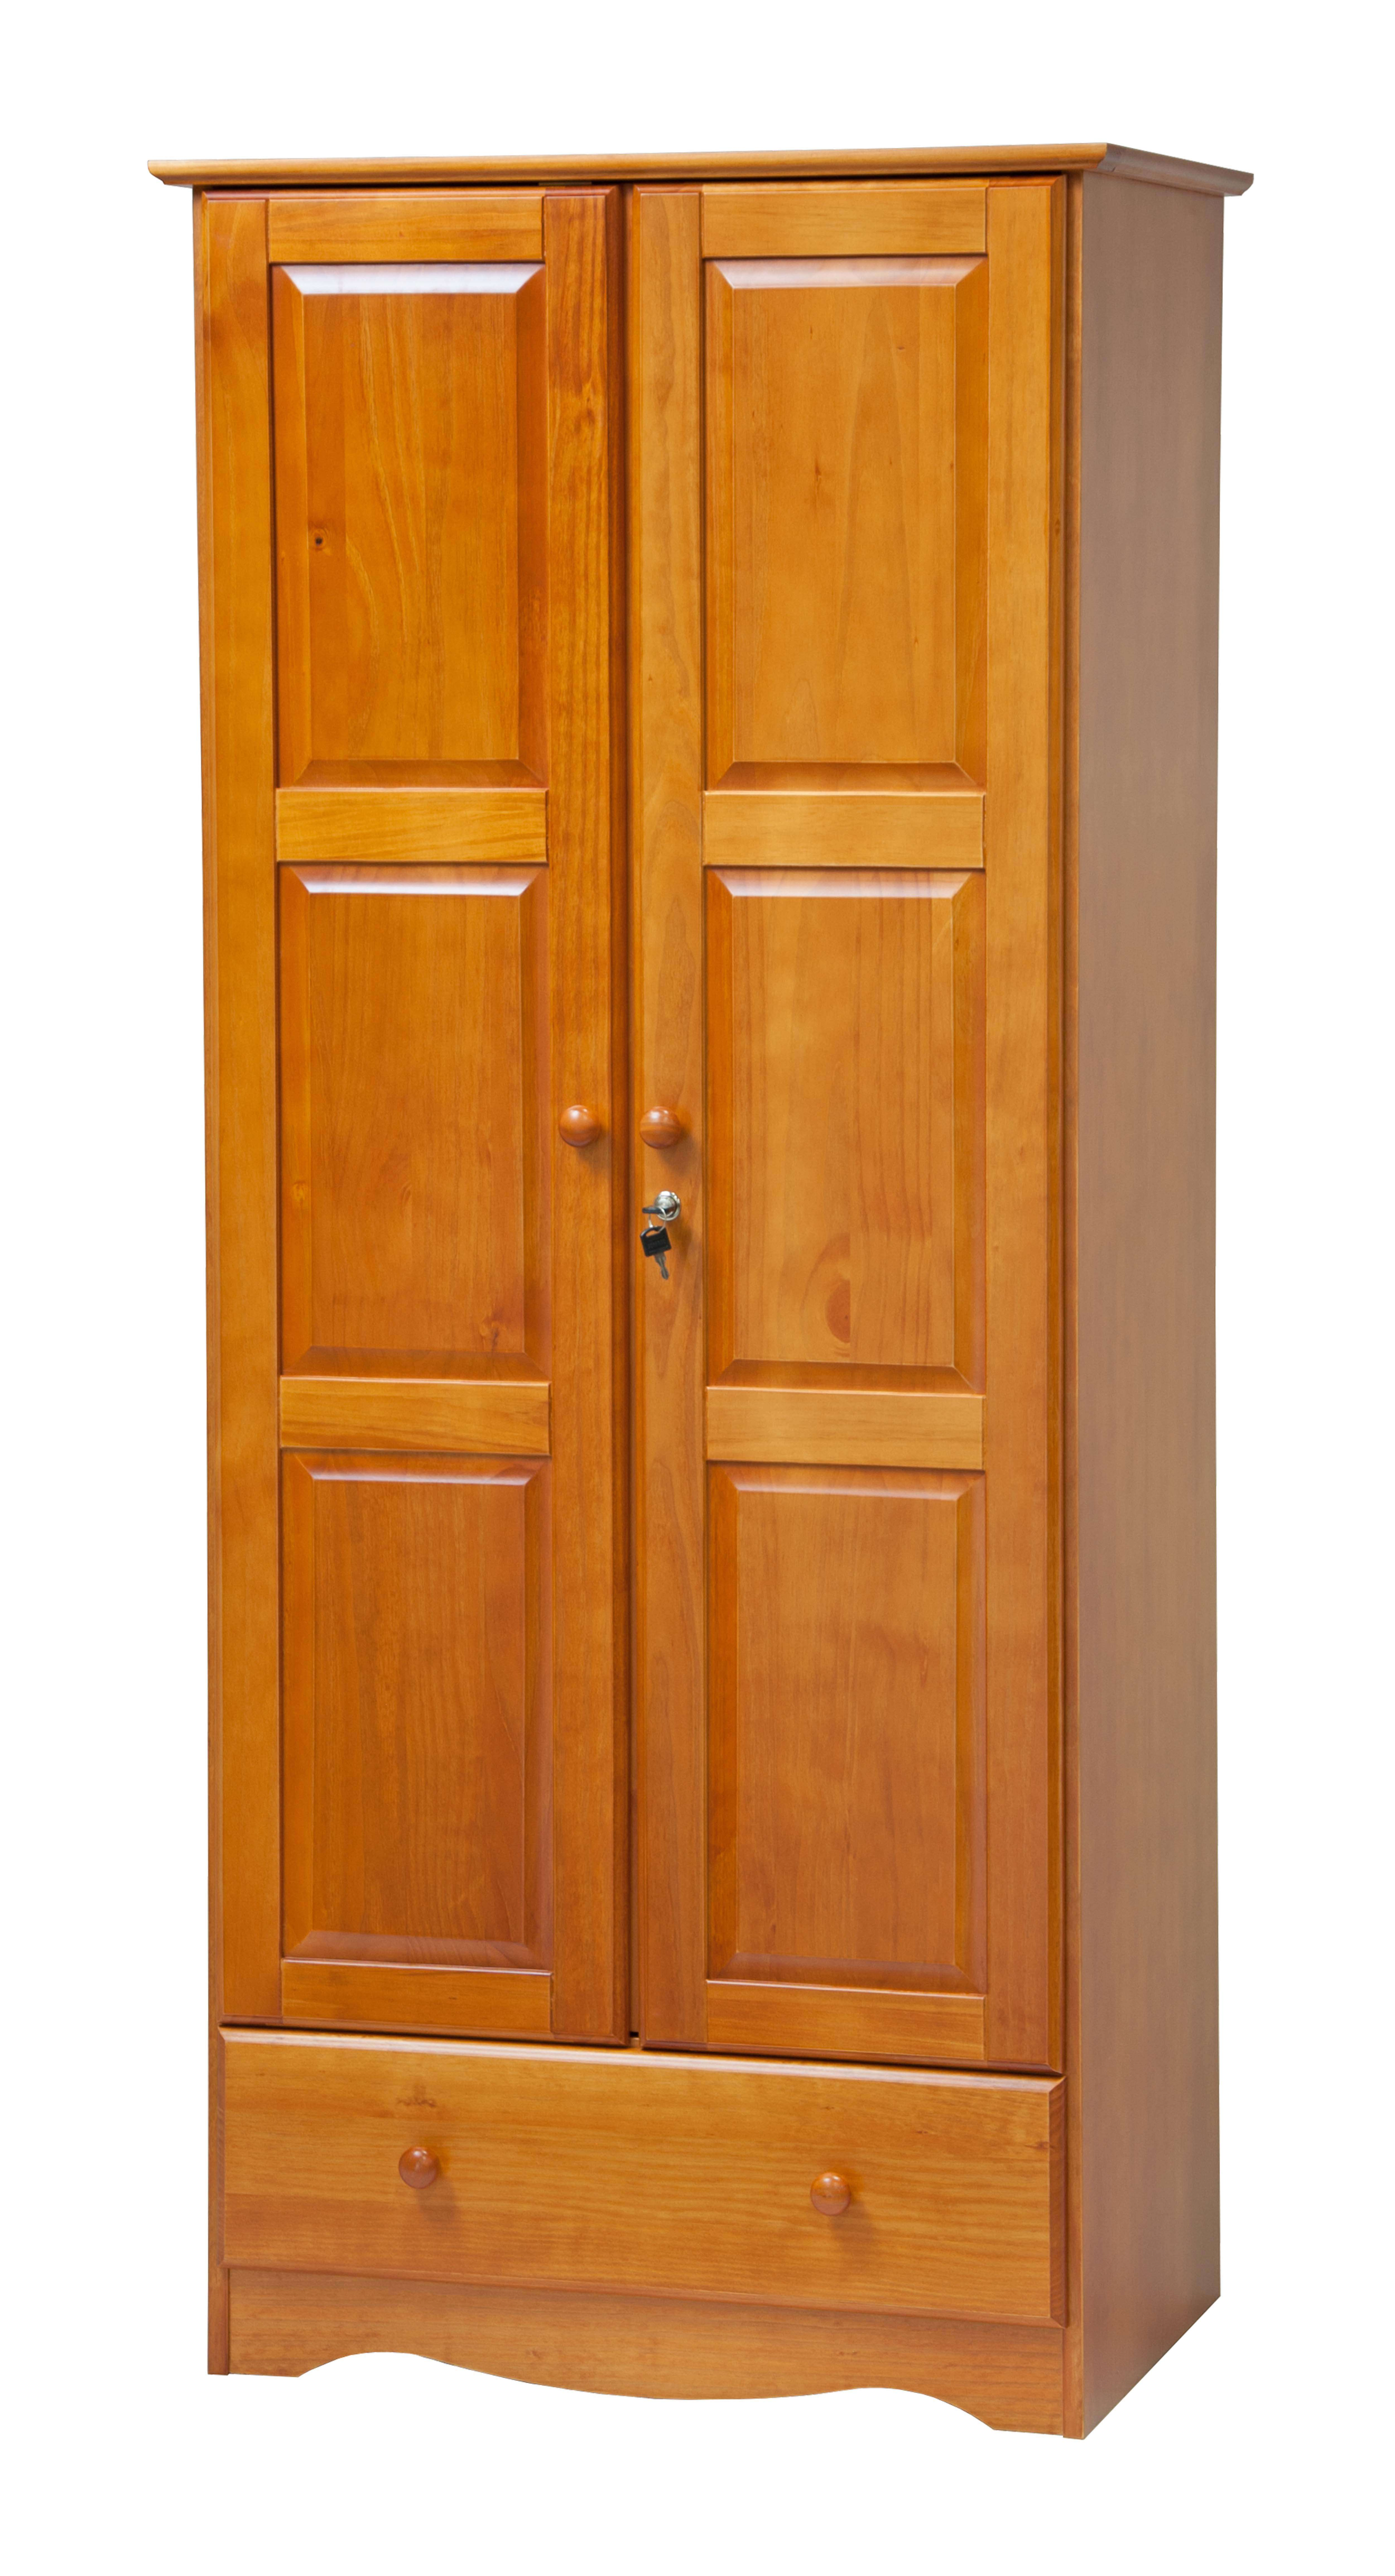 Merveilleux Flexible Locking Solid Wood Wardrobe/Closet/Armoire With Drawer And Shelf  In Honey Pine